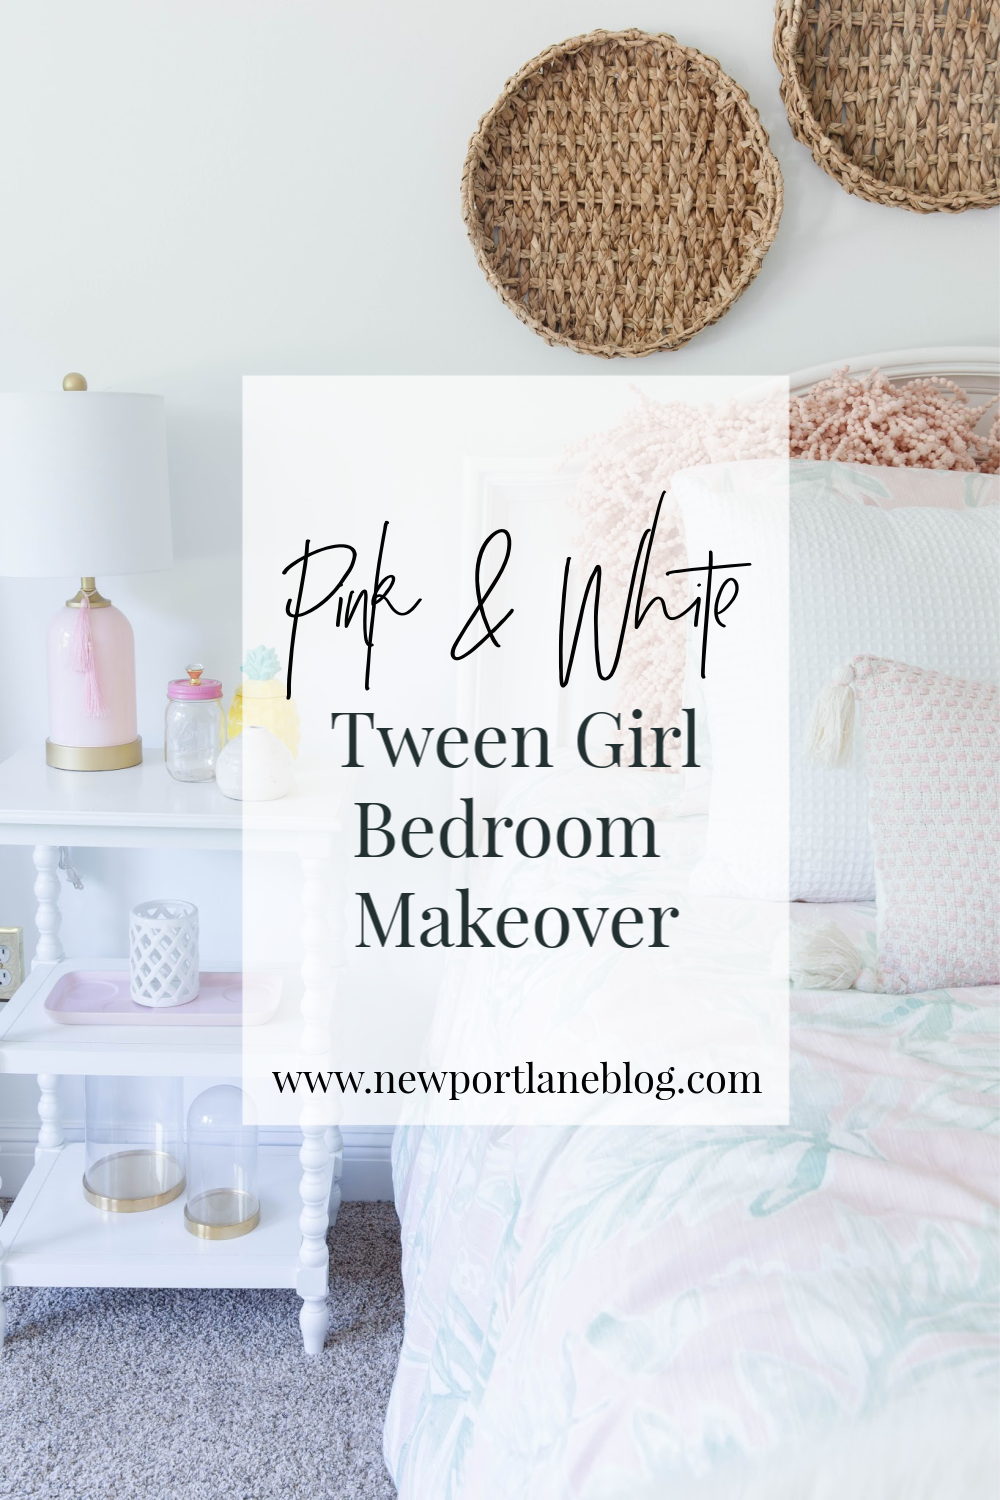 This tween bedroom makeover features coastal decor with pink, white and rattan accents - all done on a budget!